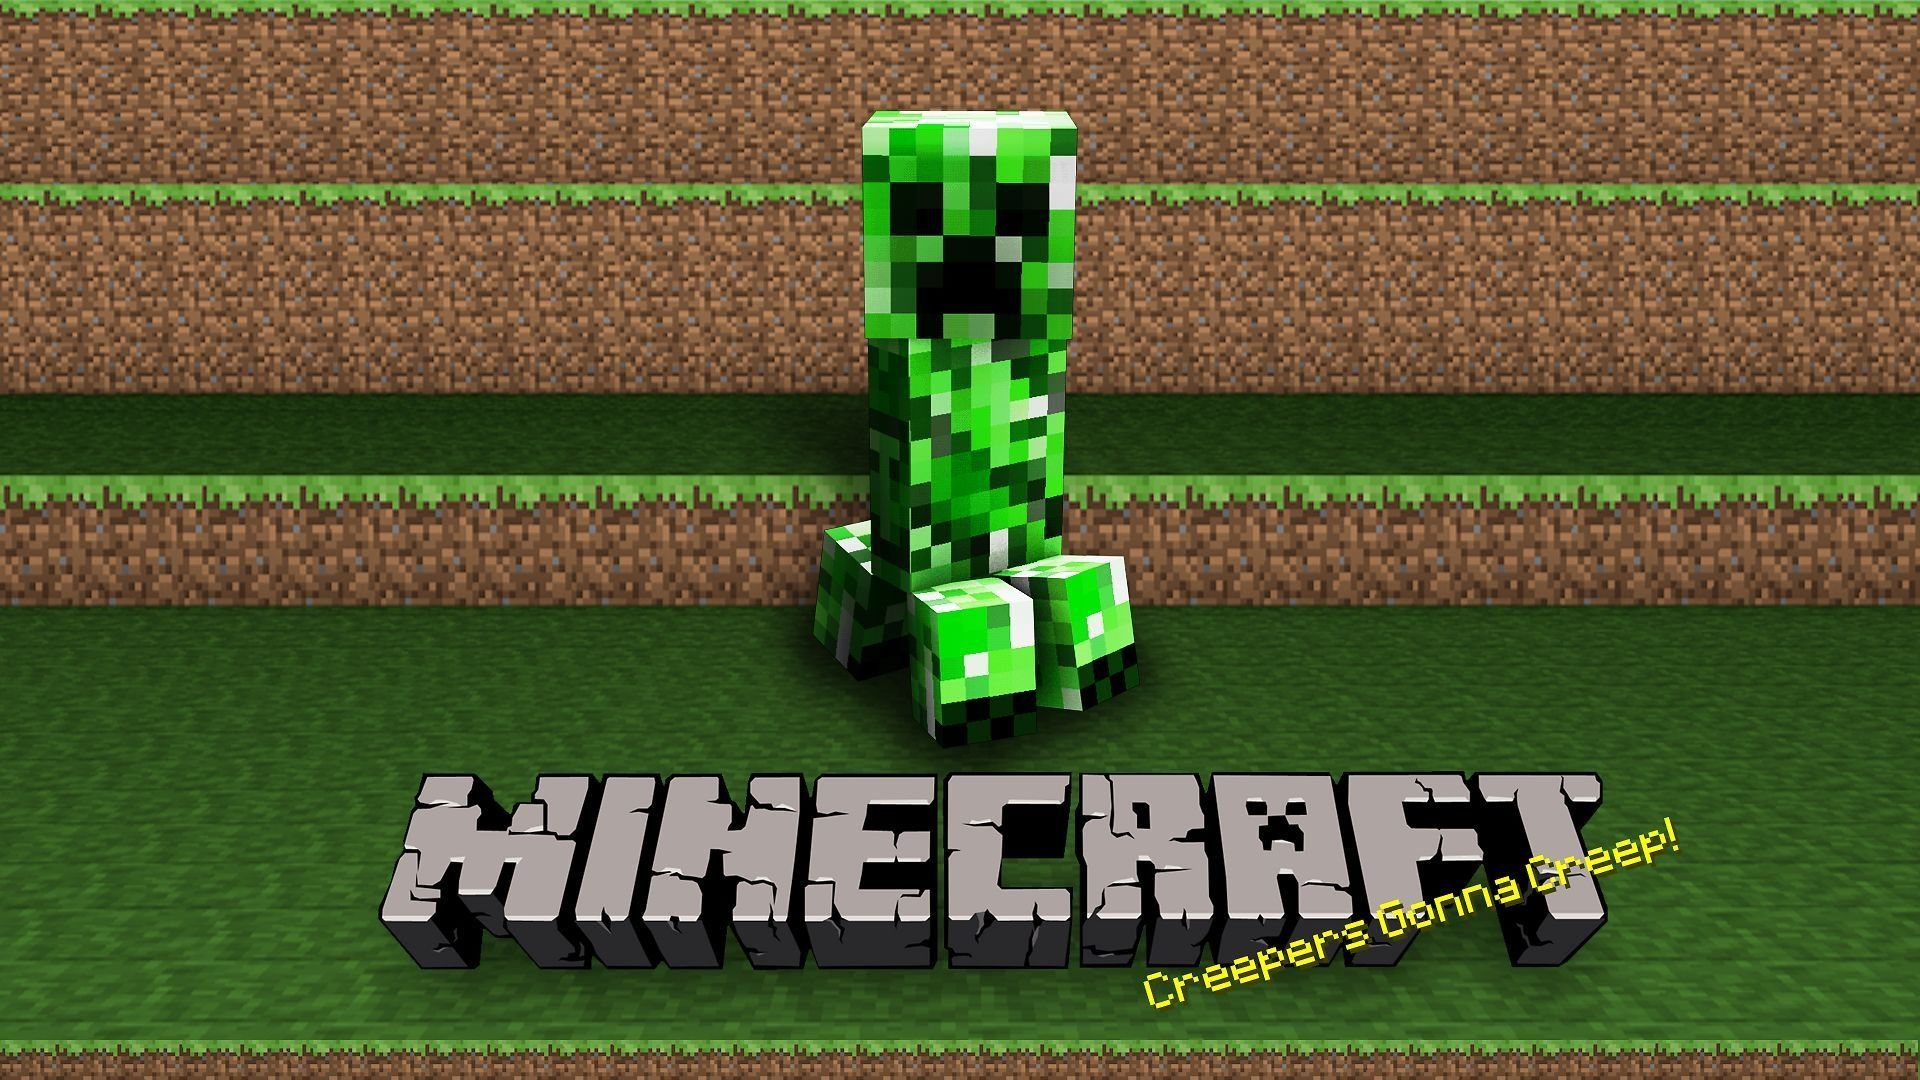 creepers gonna creep song